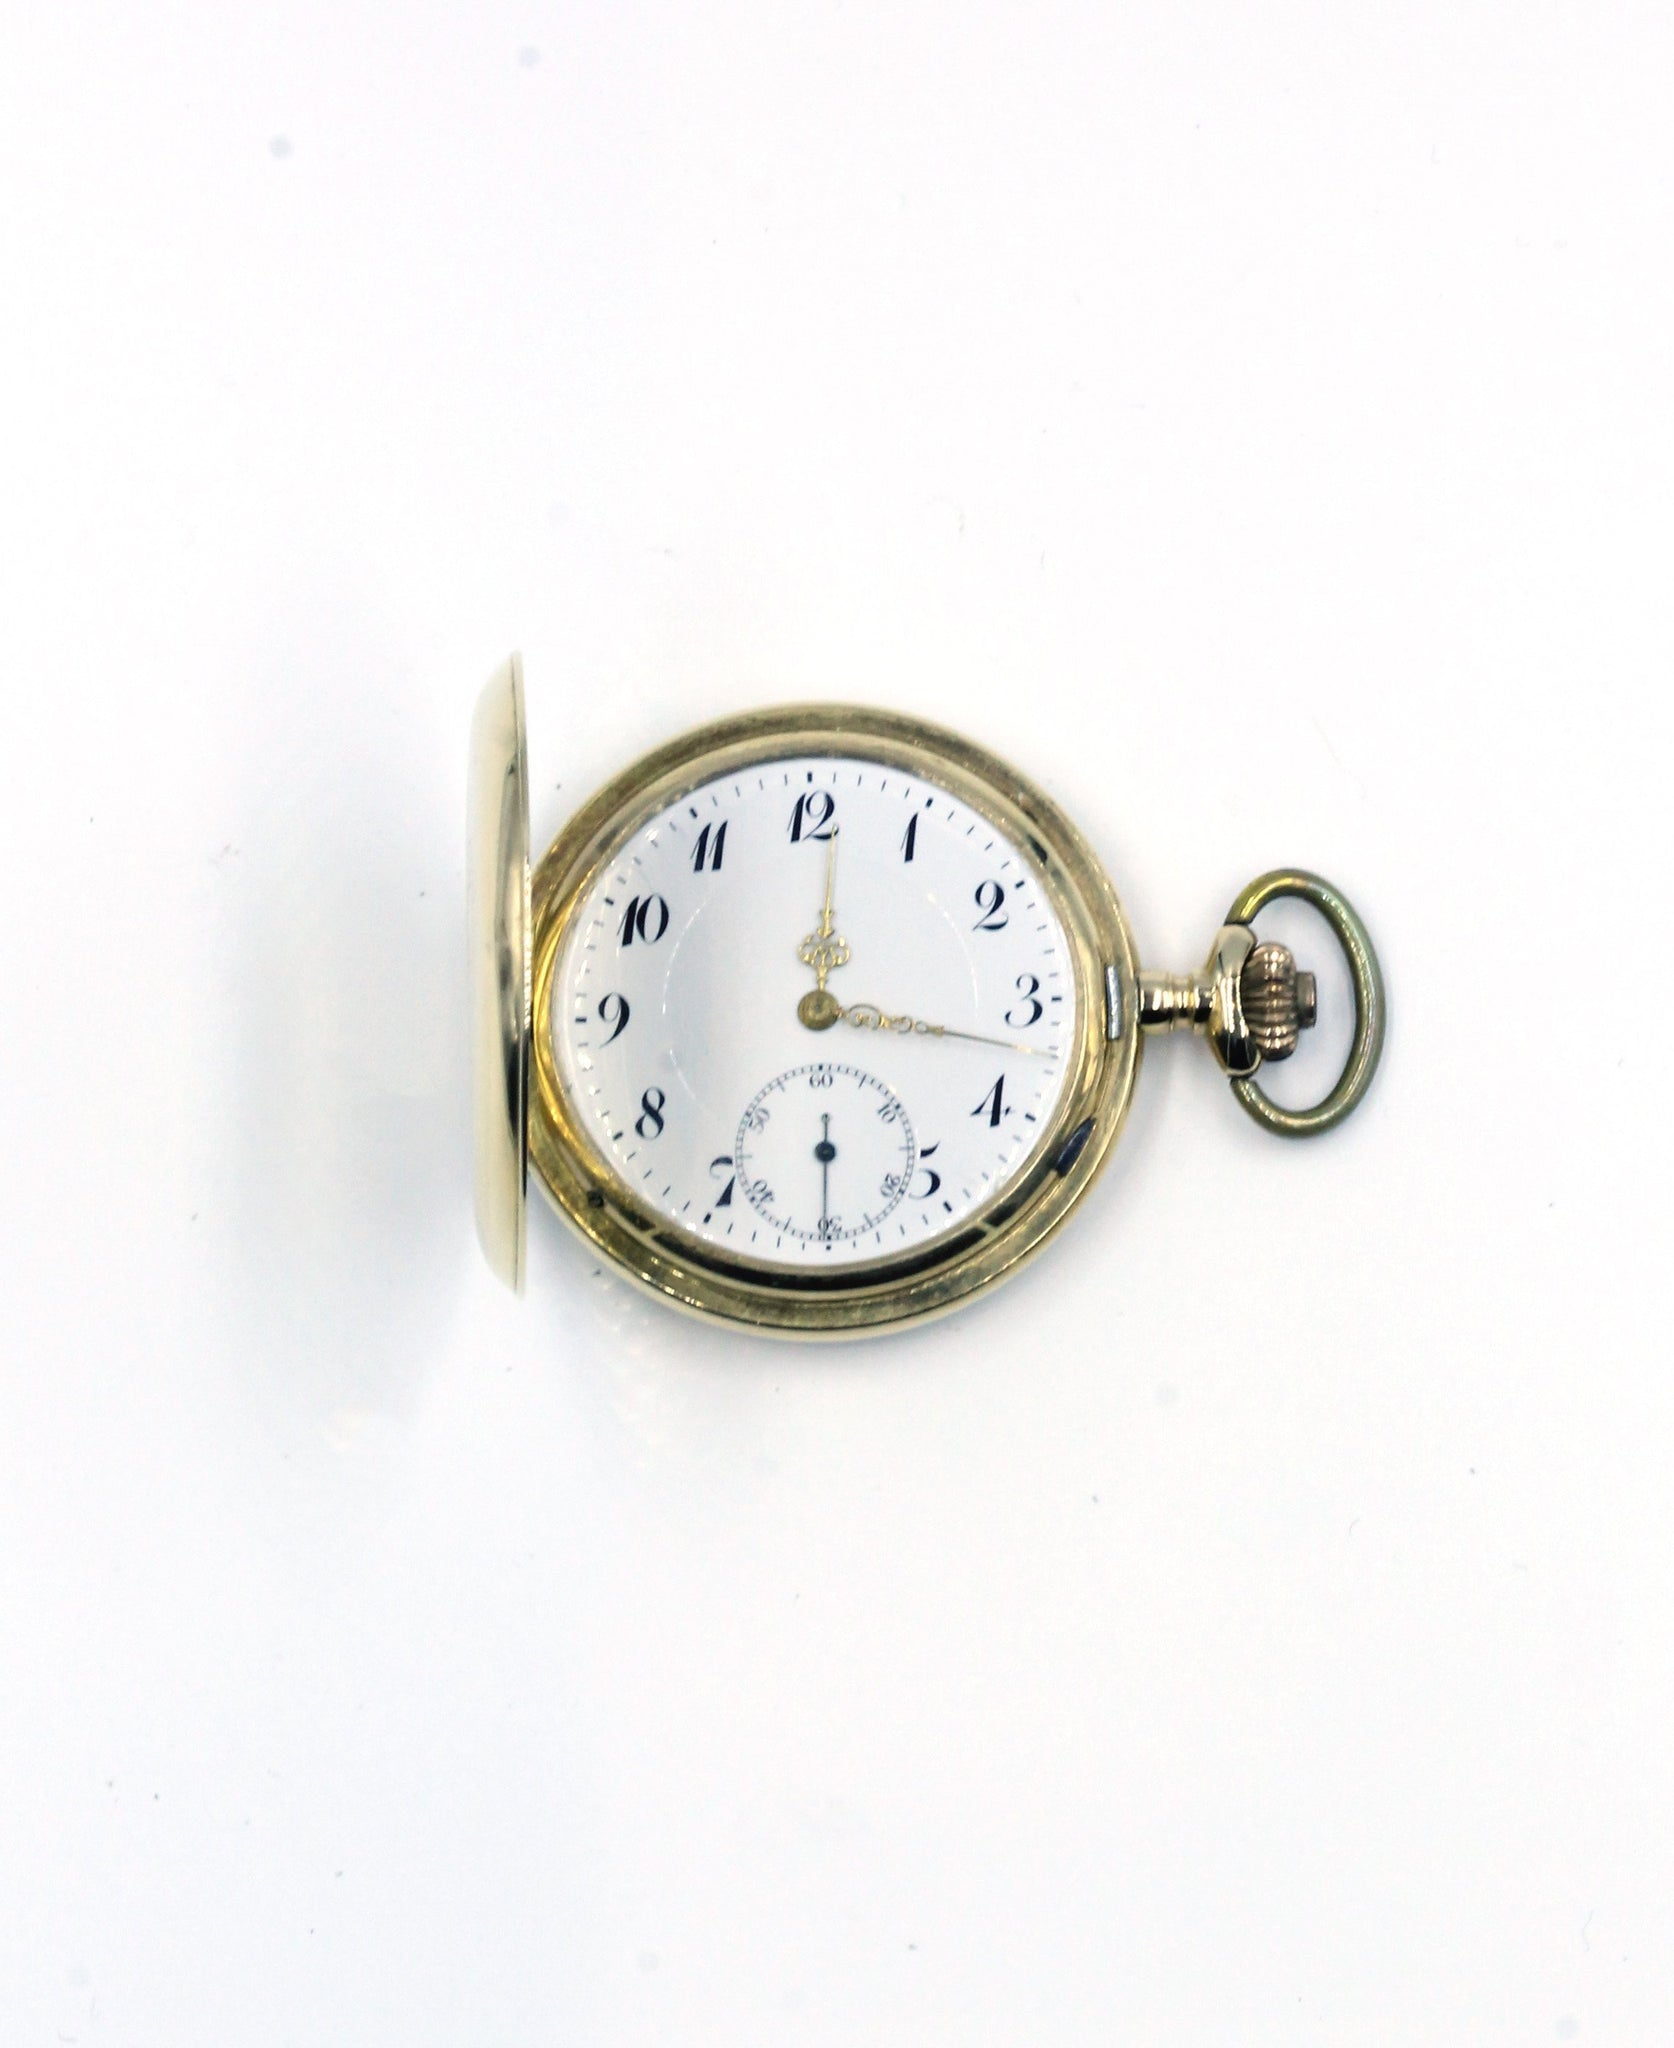 Vintage 14K Gold Pocket Watch, SALE, SOLD